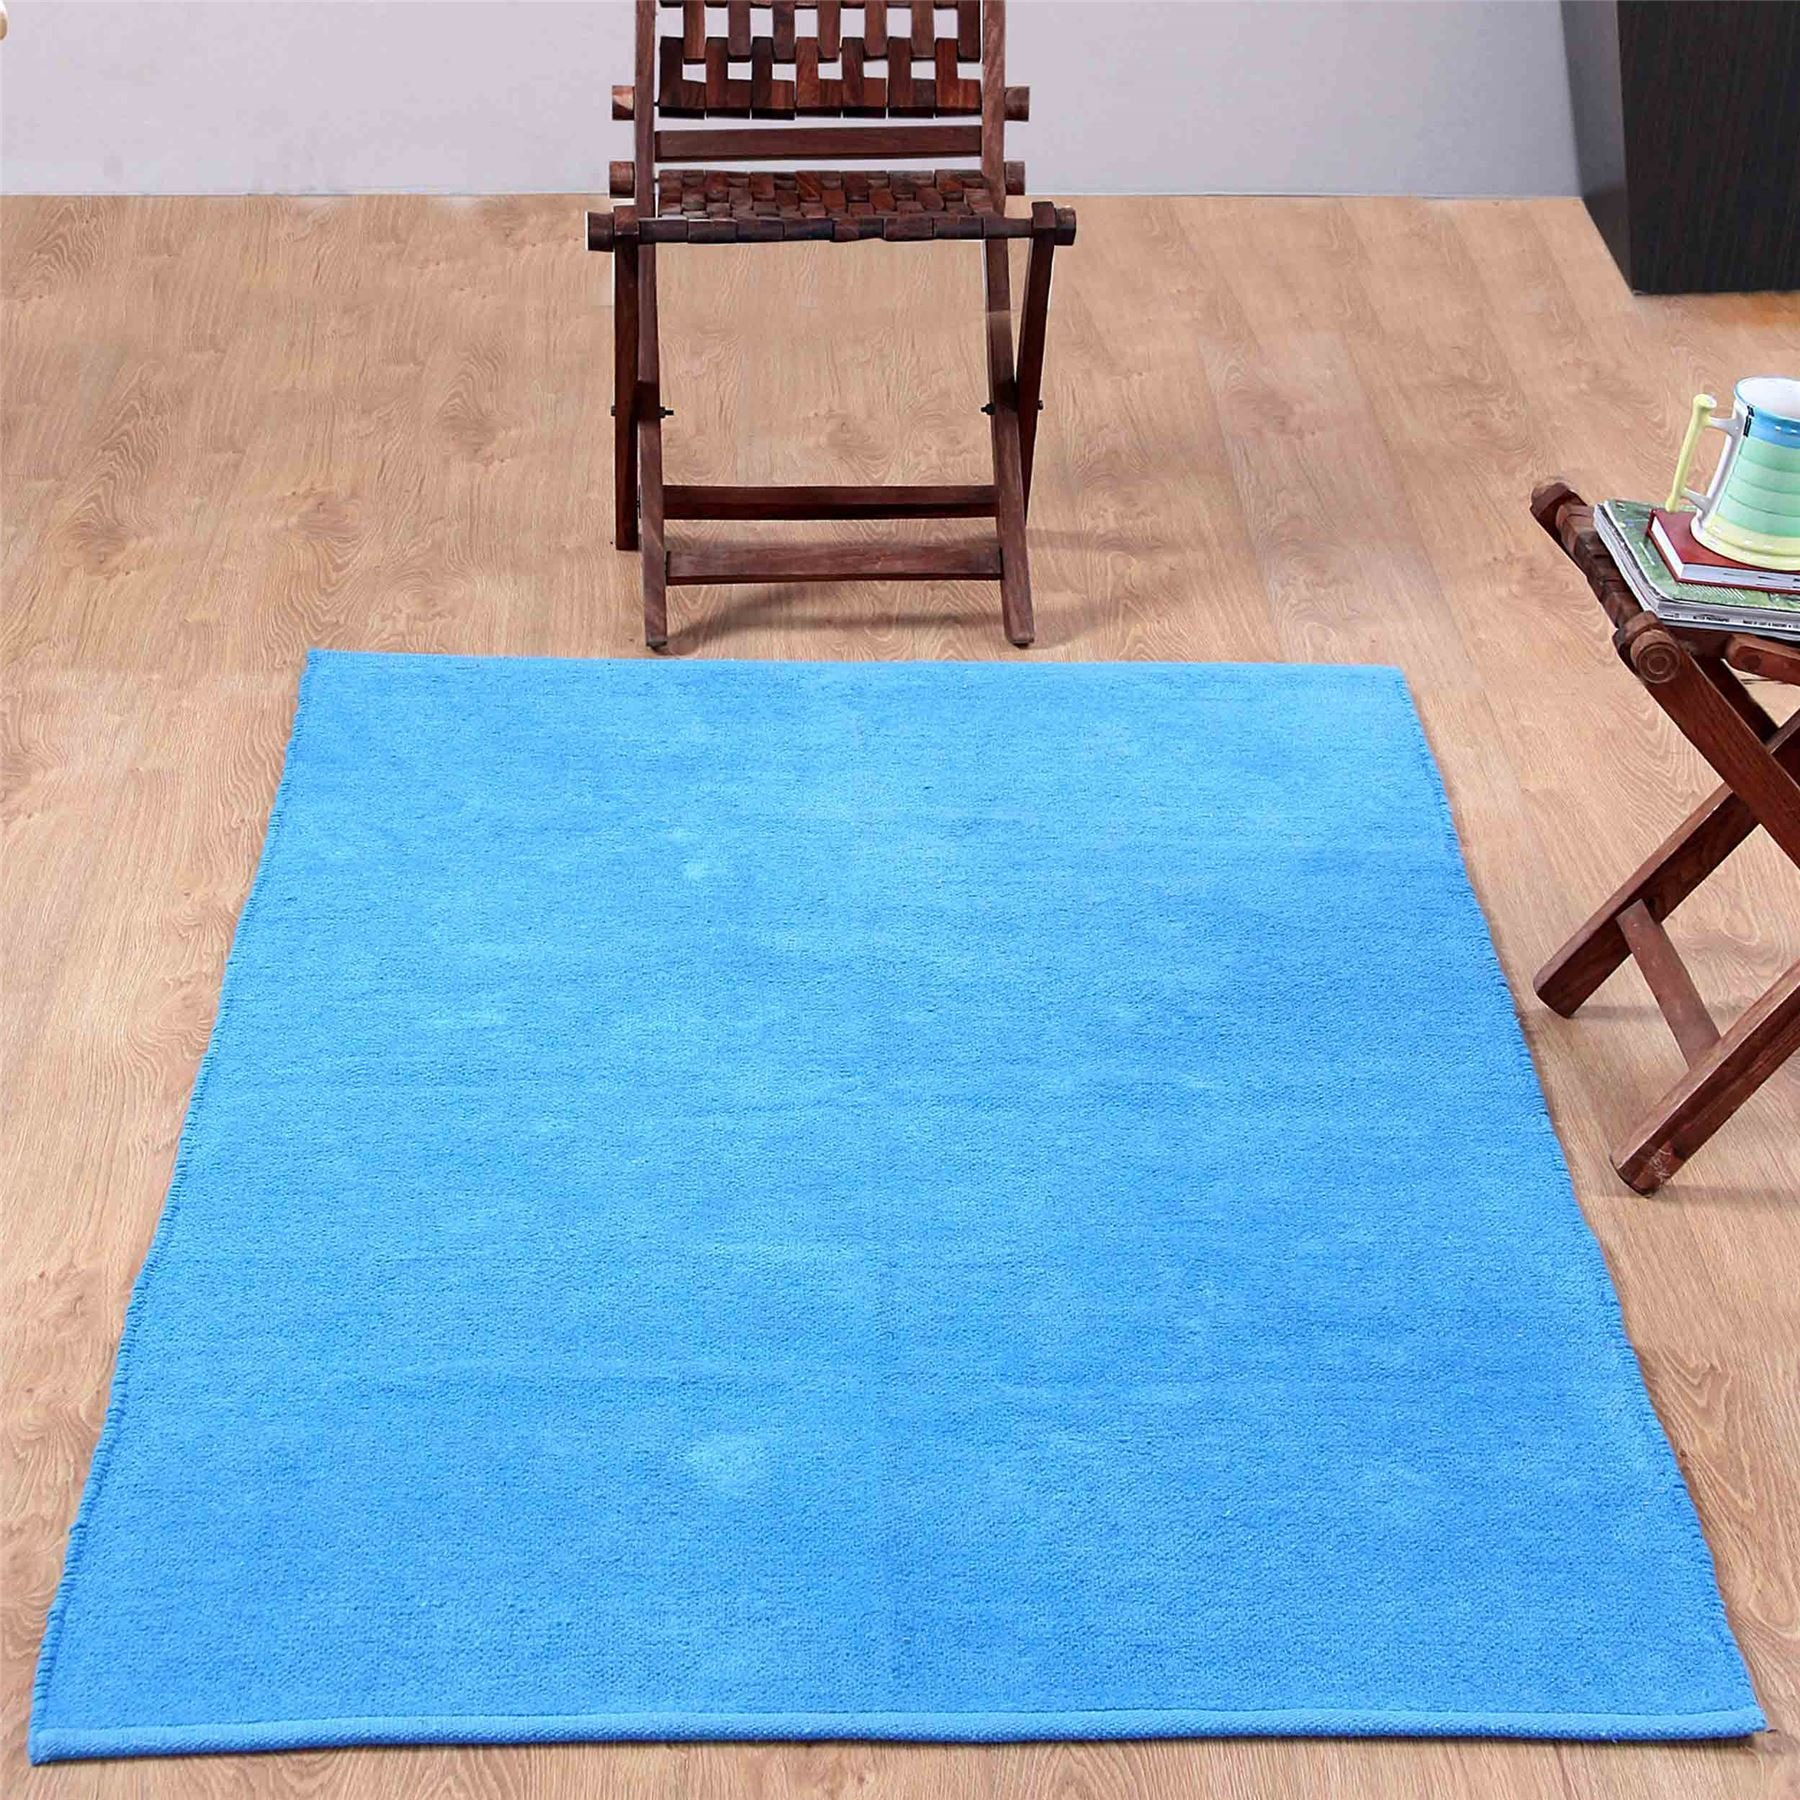 Best Small Large Kids Rugs Childrens Floor Mats Pink Blue Baby With Pictures